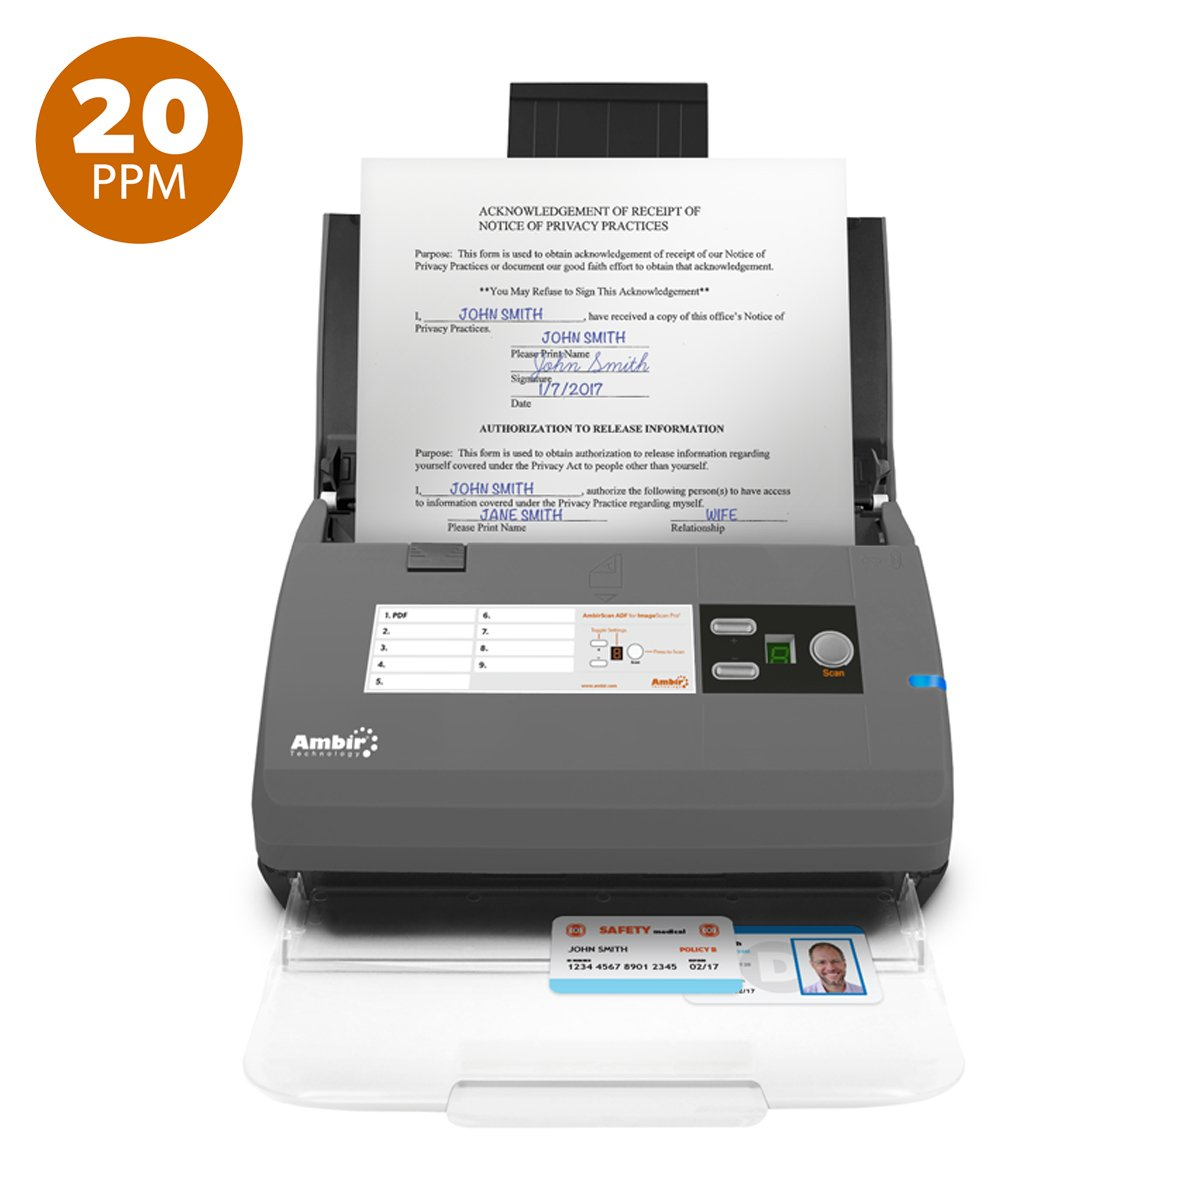 Ambir ImageScan Pro 820ix (DS820ix-AS) High-Speed Duplex Document and ID Scanner with Automatic Document Feeder and 20 Pages Per Minute Scanning (Includes AmbirScan ADF Software and TWAIN driver)